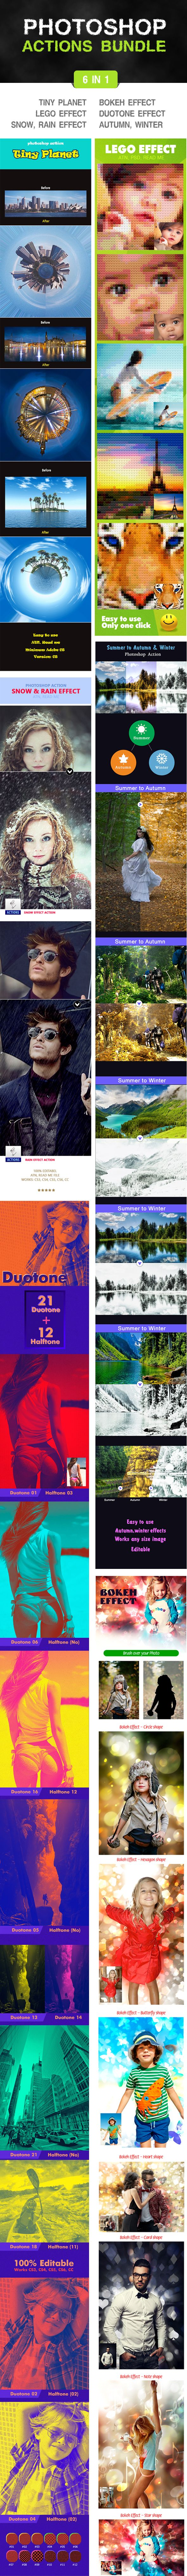 Photoshop Actions Bundle - Photo Effects Actions